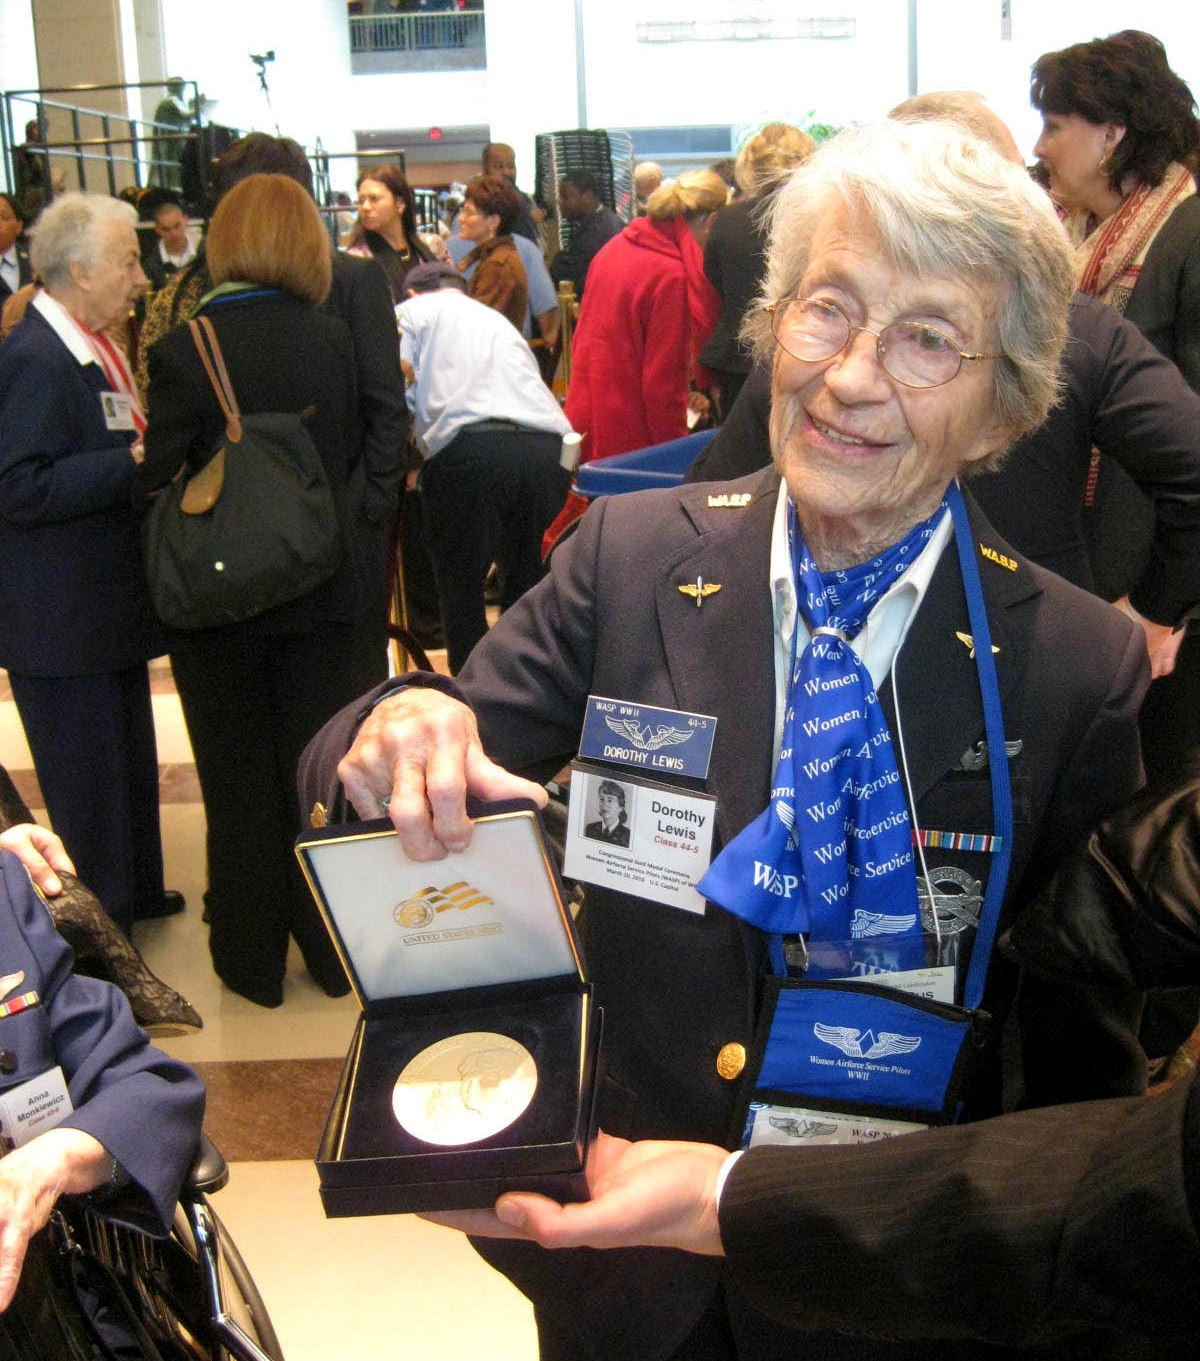 Dot getting the Congressional Gold Medal - March 10, 2010